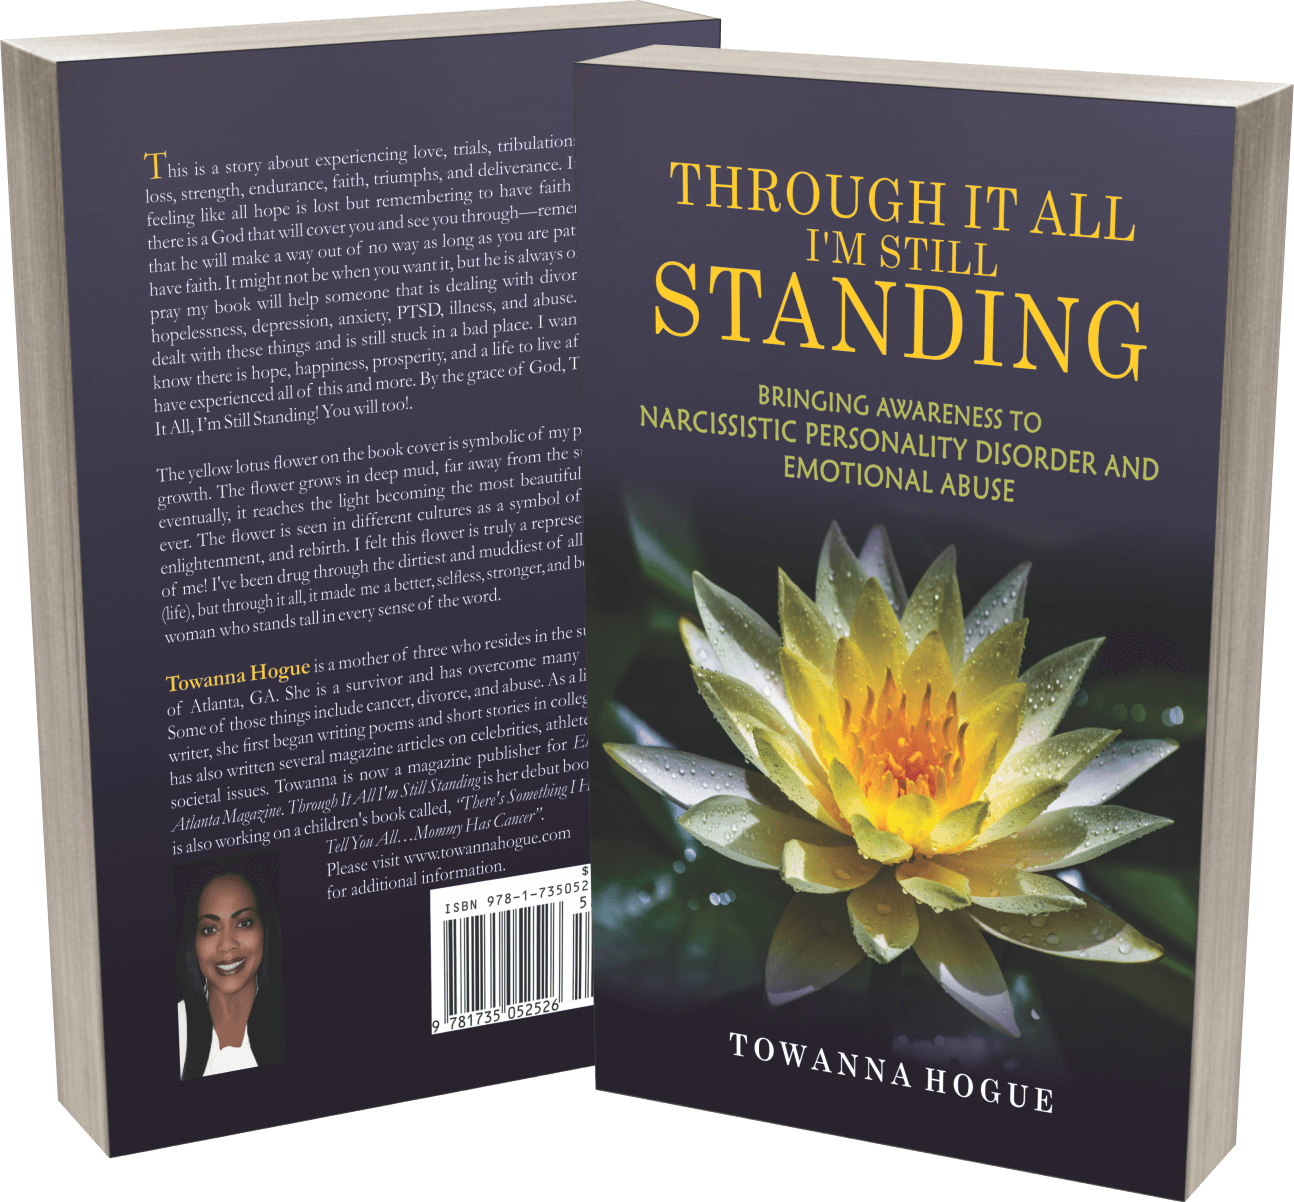 Lifelong Writer And Survivor Of Cancer And Abuse Shares Her Story In A Self-help Book